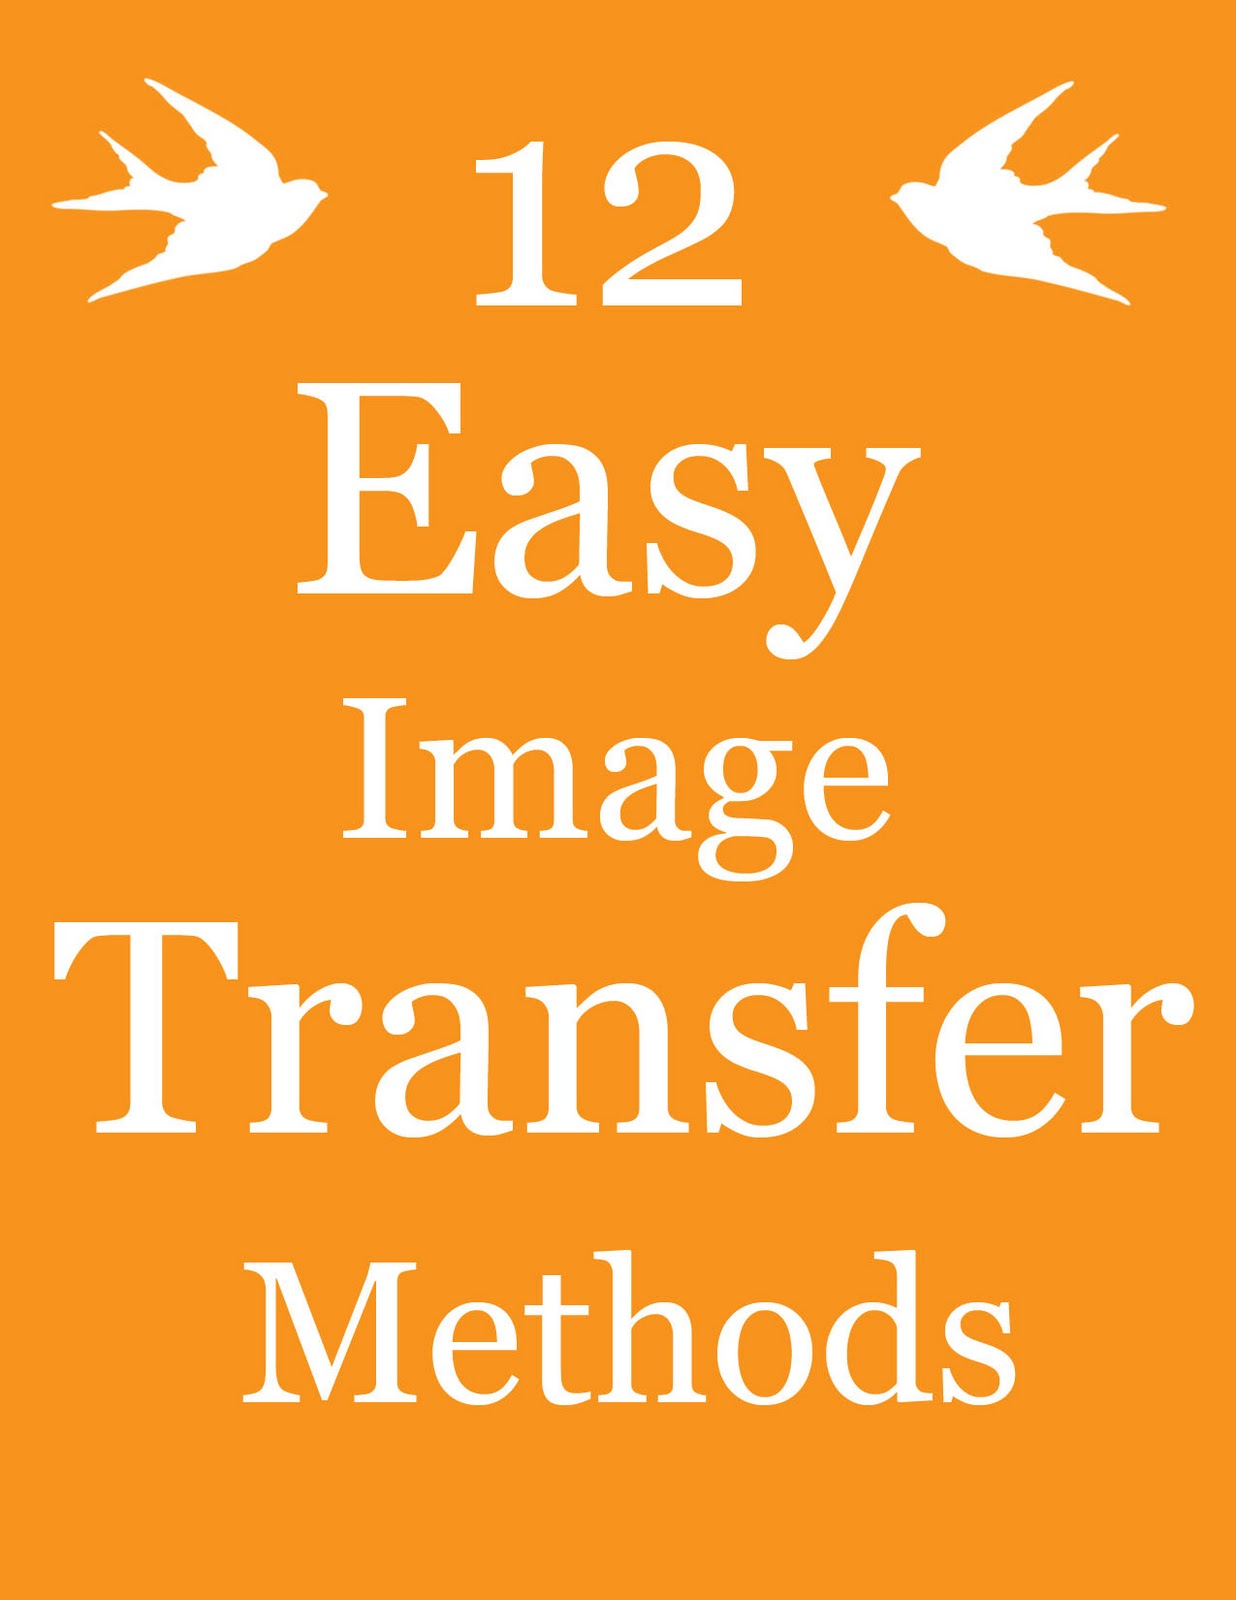 12 easy image transfer methods for diy projects the graphics fairy 12 easy image transfer methods solutioingenieria Image collections